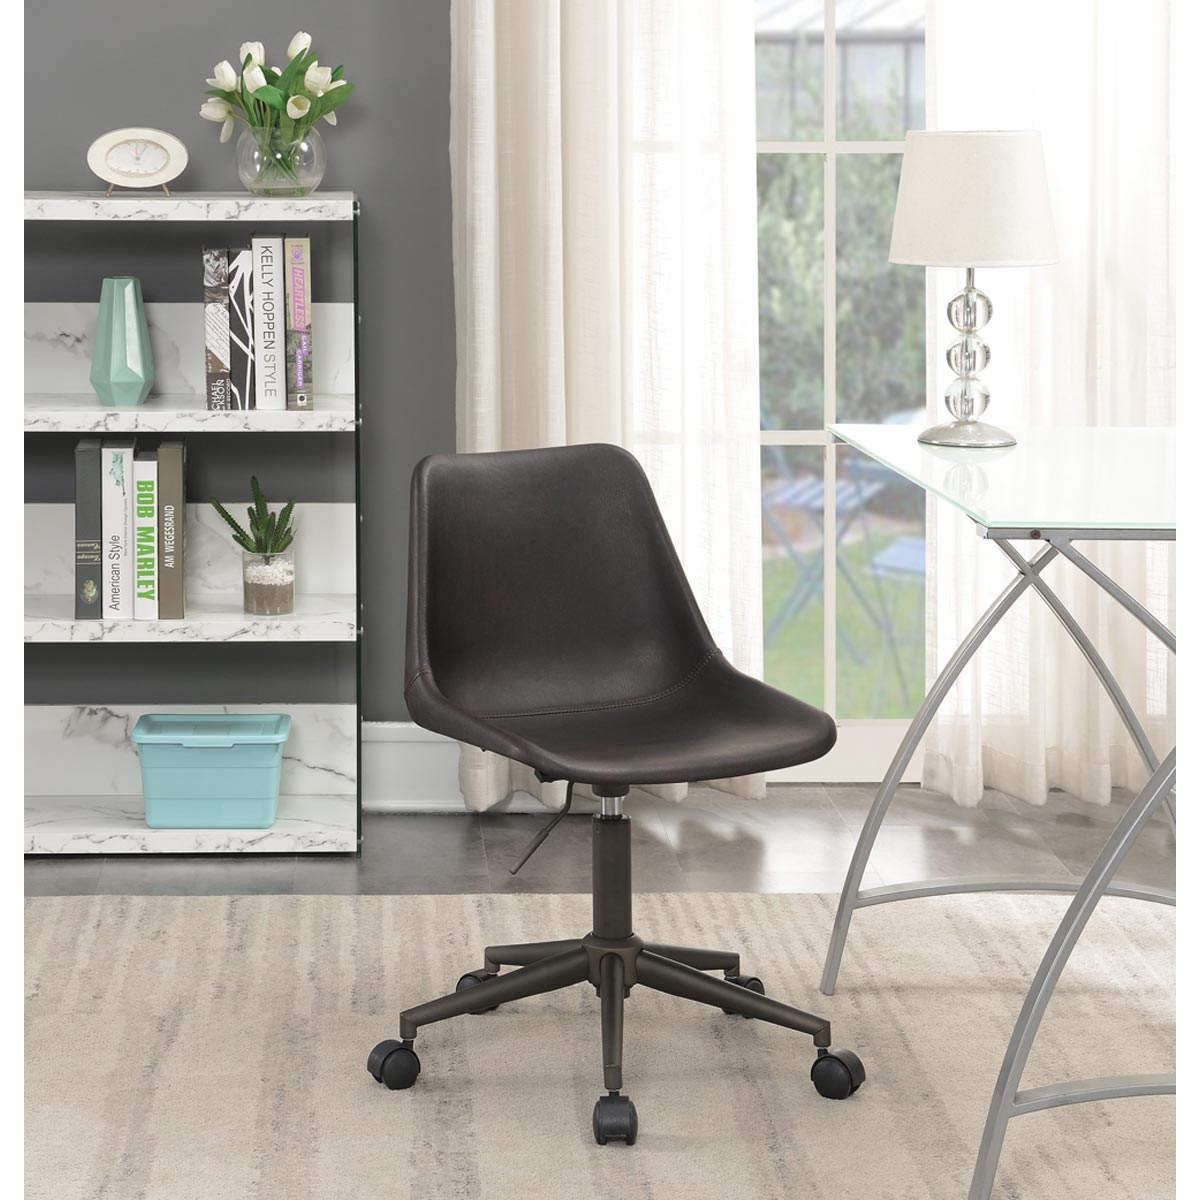 Low-Back Adjustable Height Faux Leather Office Chair, Brown/Rustic Taupe